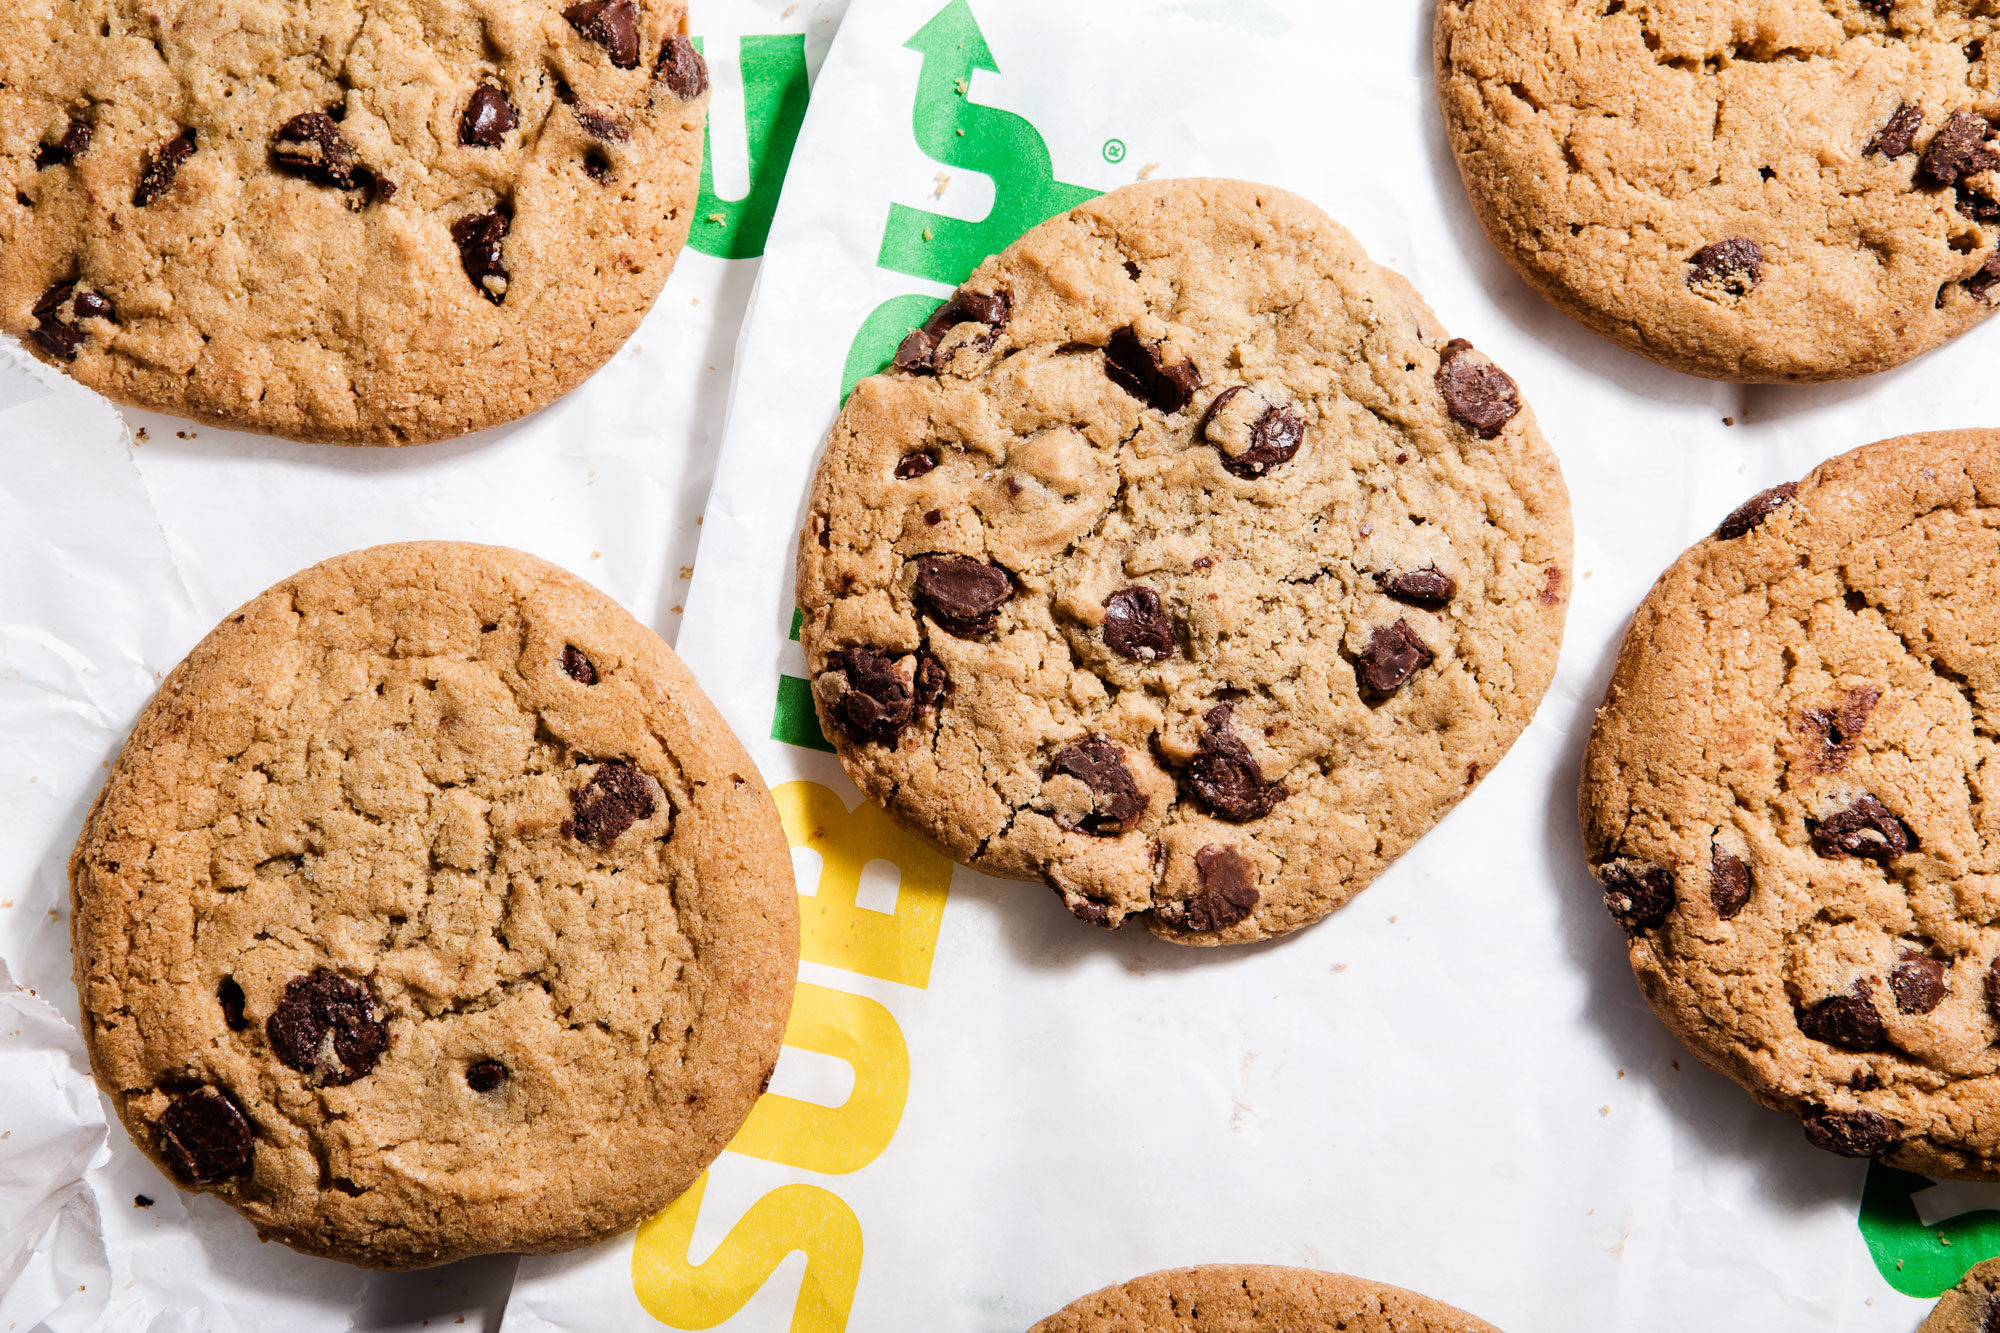 Article-Best-Store-Bought-Chocolate-Chip-Cookies